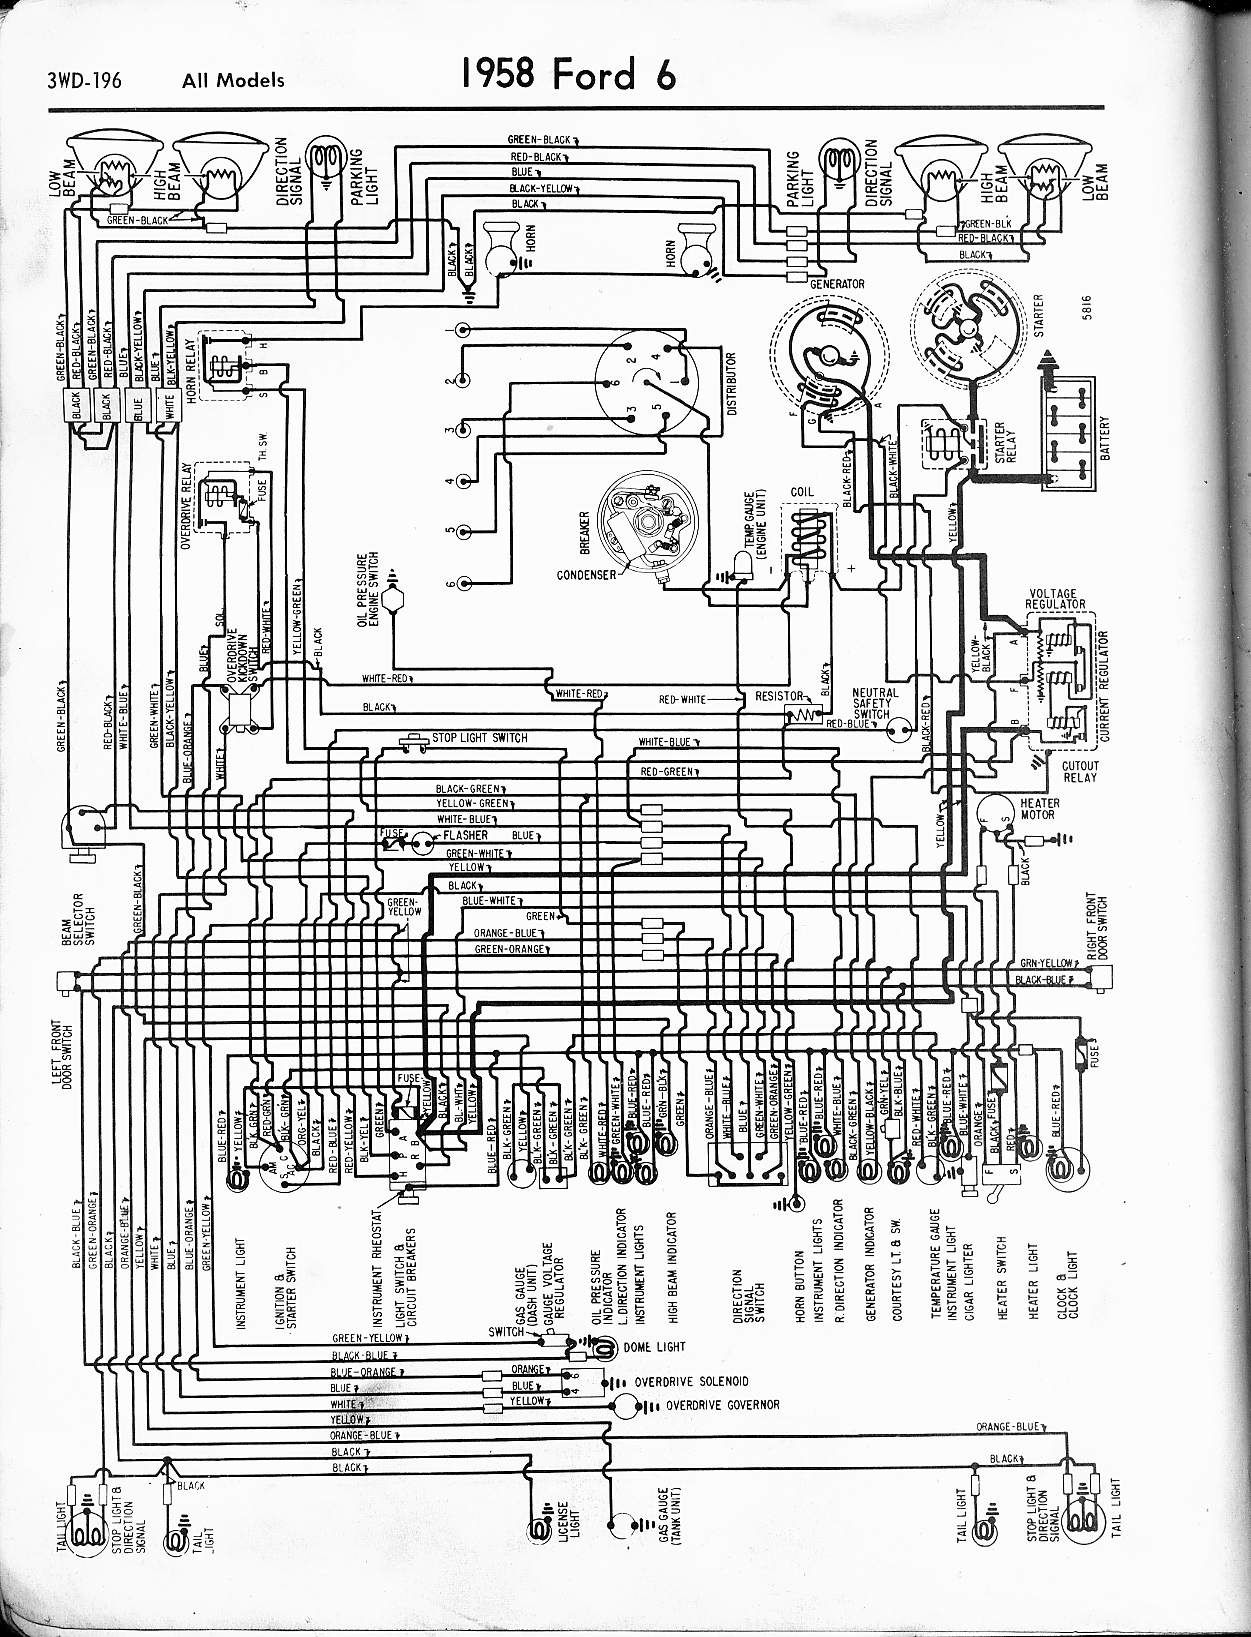 95 ford thunderbird engine diagram 1958 ford 6 wiring schematic | my | diagram, 1954 ford и ...